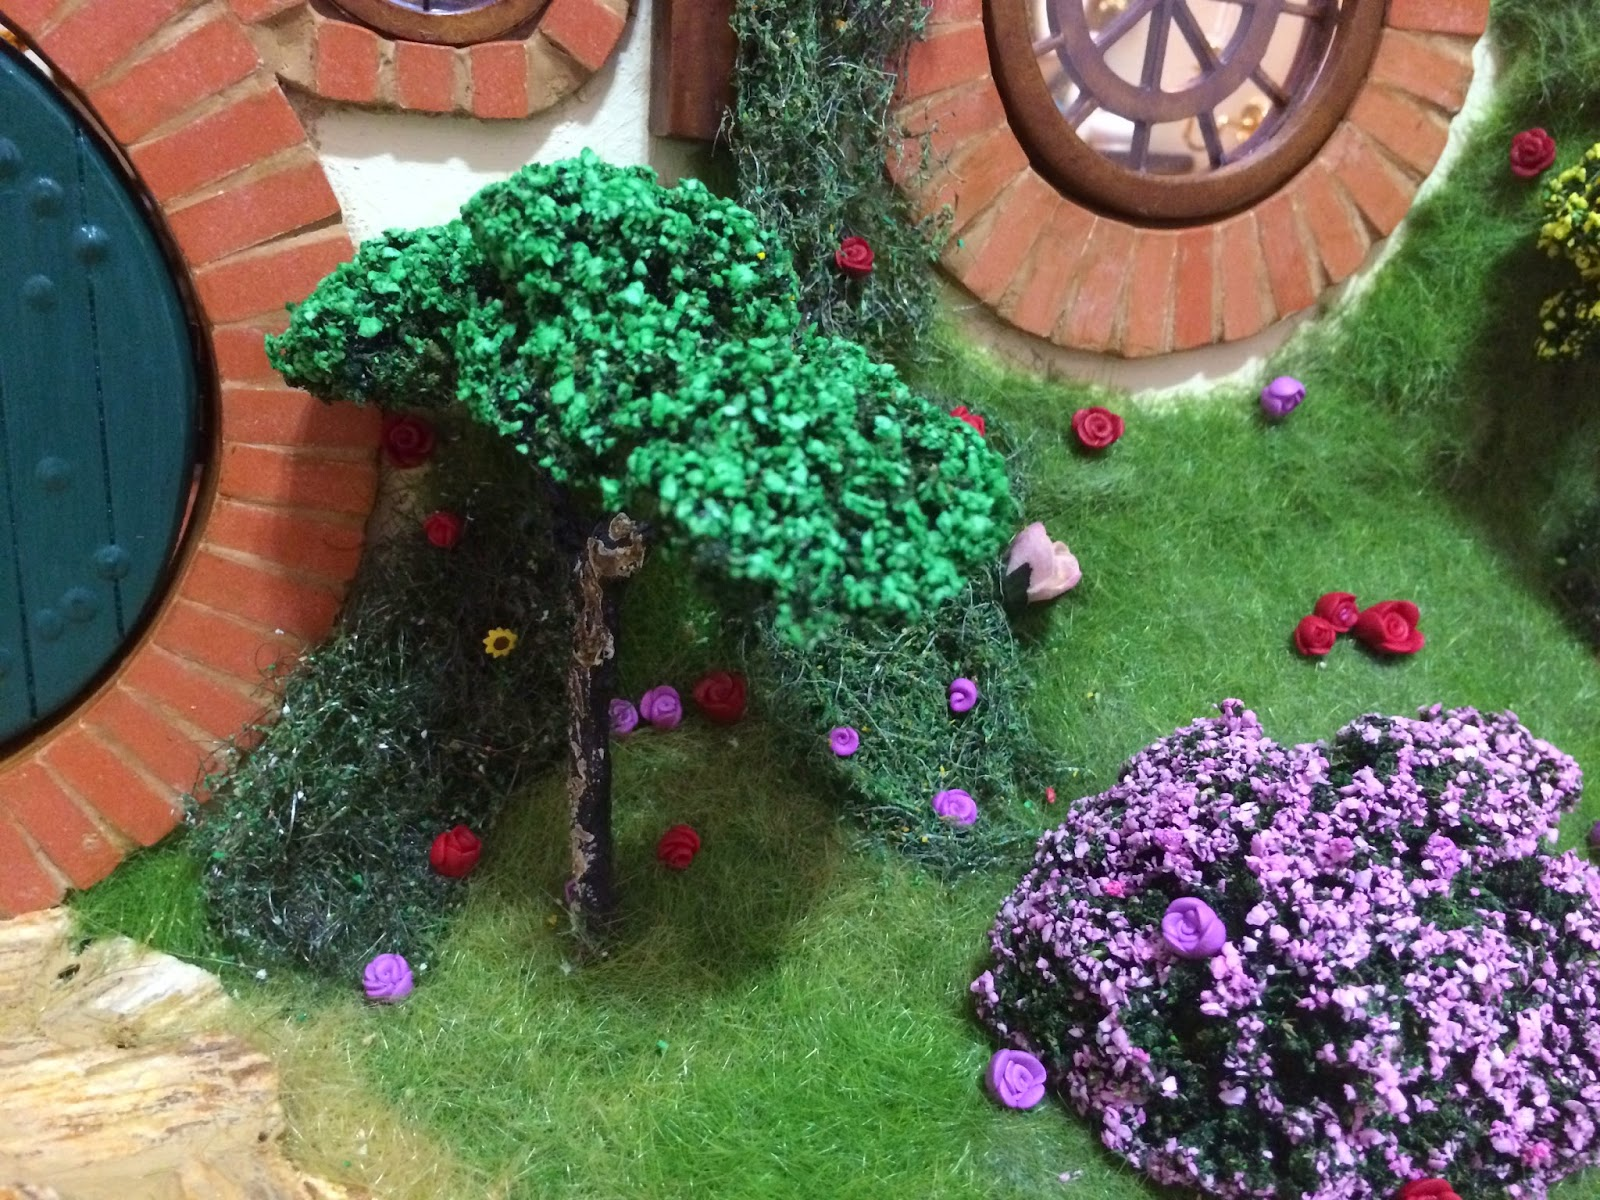 My Hobbit Hole Bag End Garden